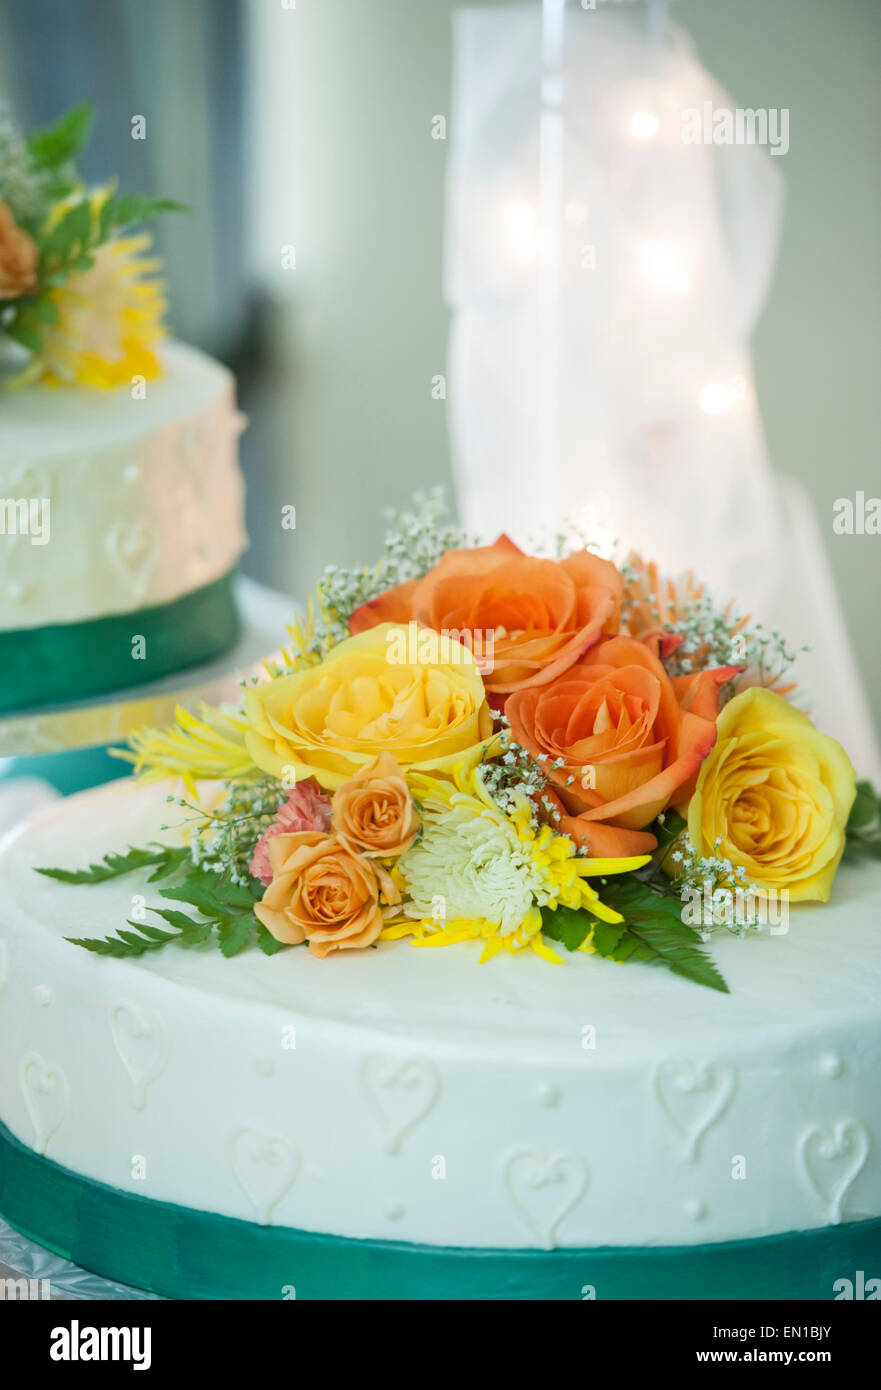 Wedding Decorations Blue With Orange And Yellow Flowers